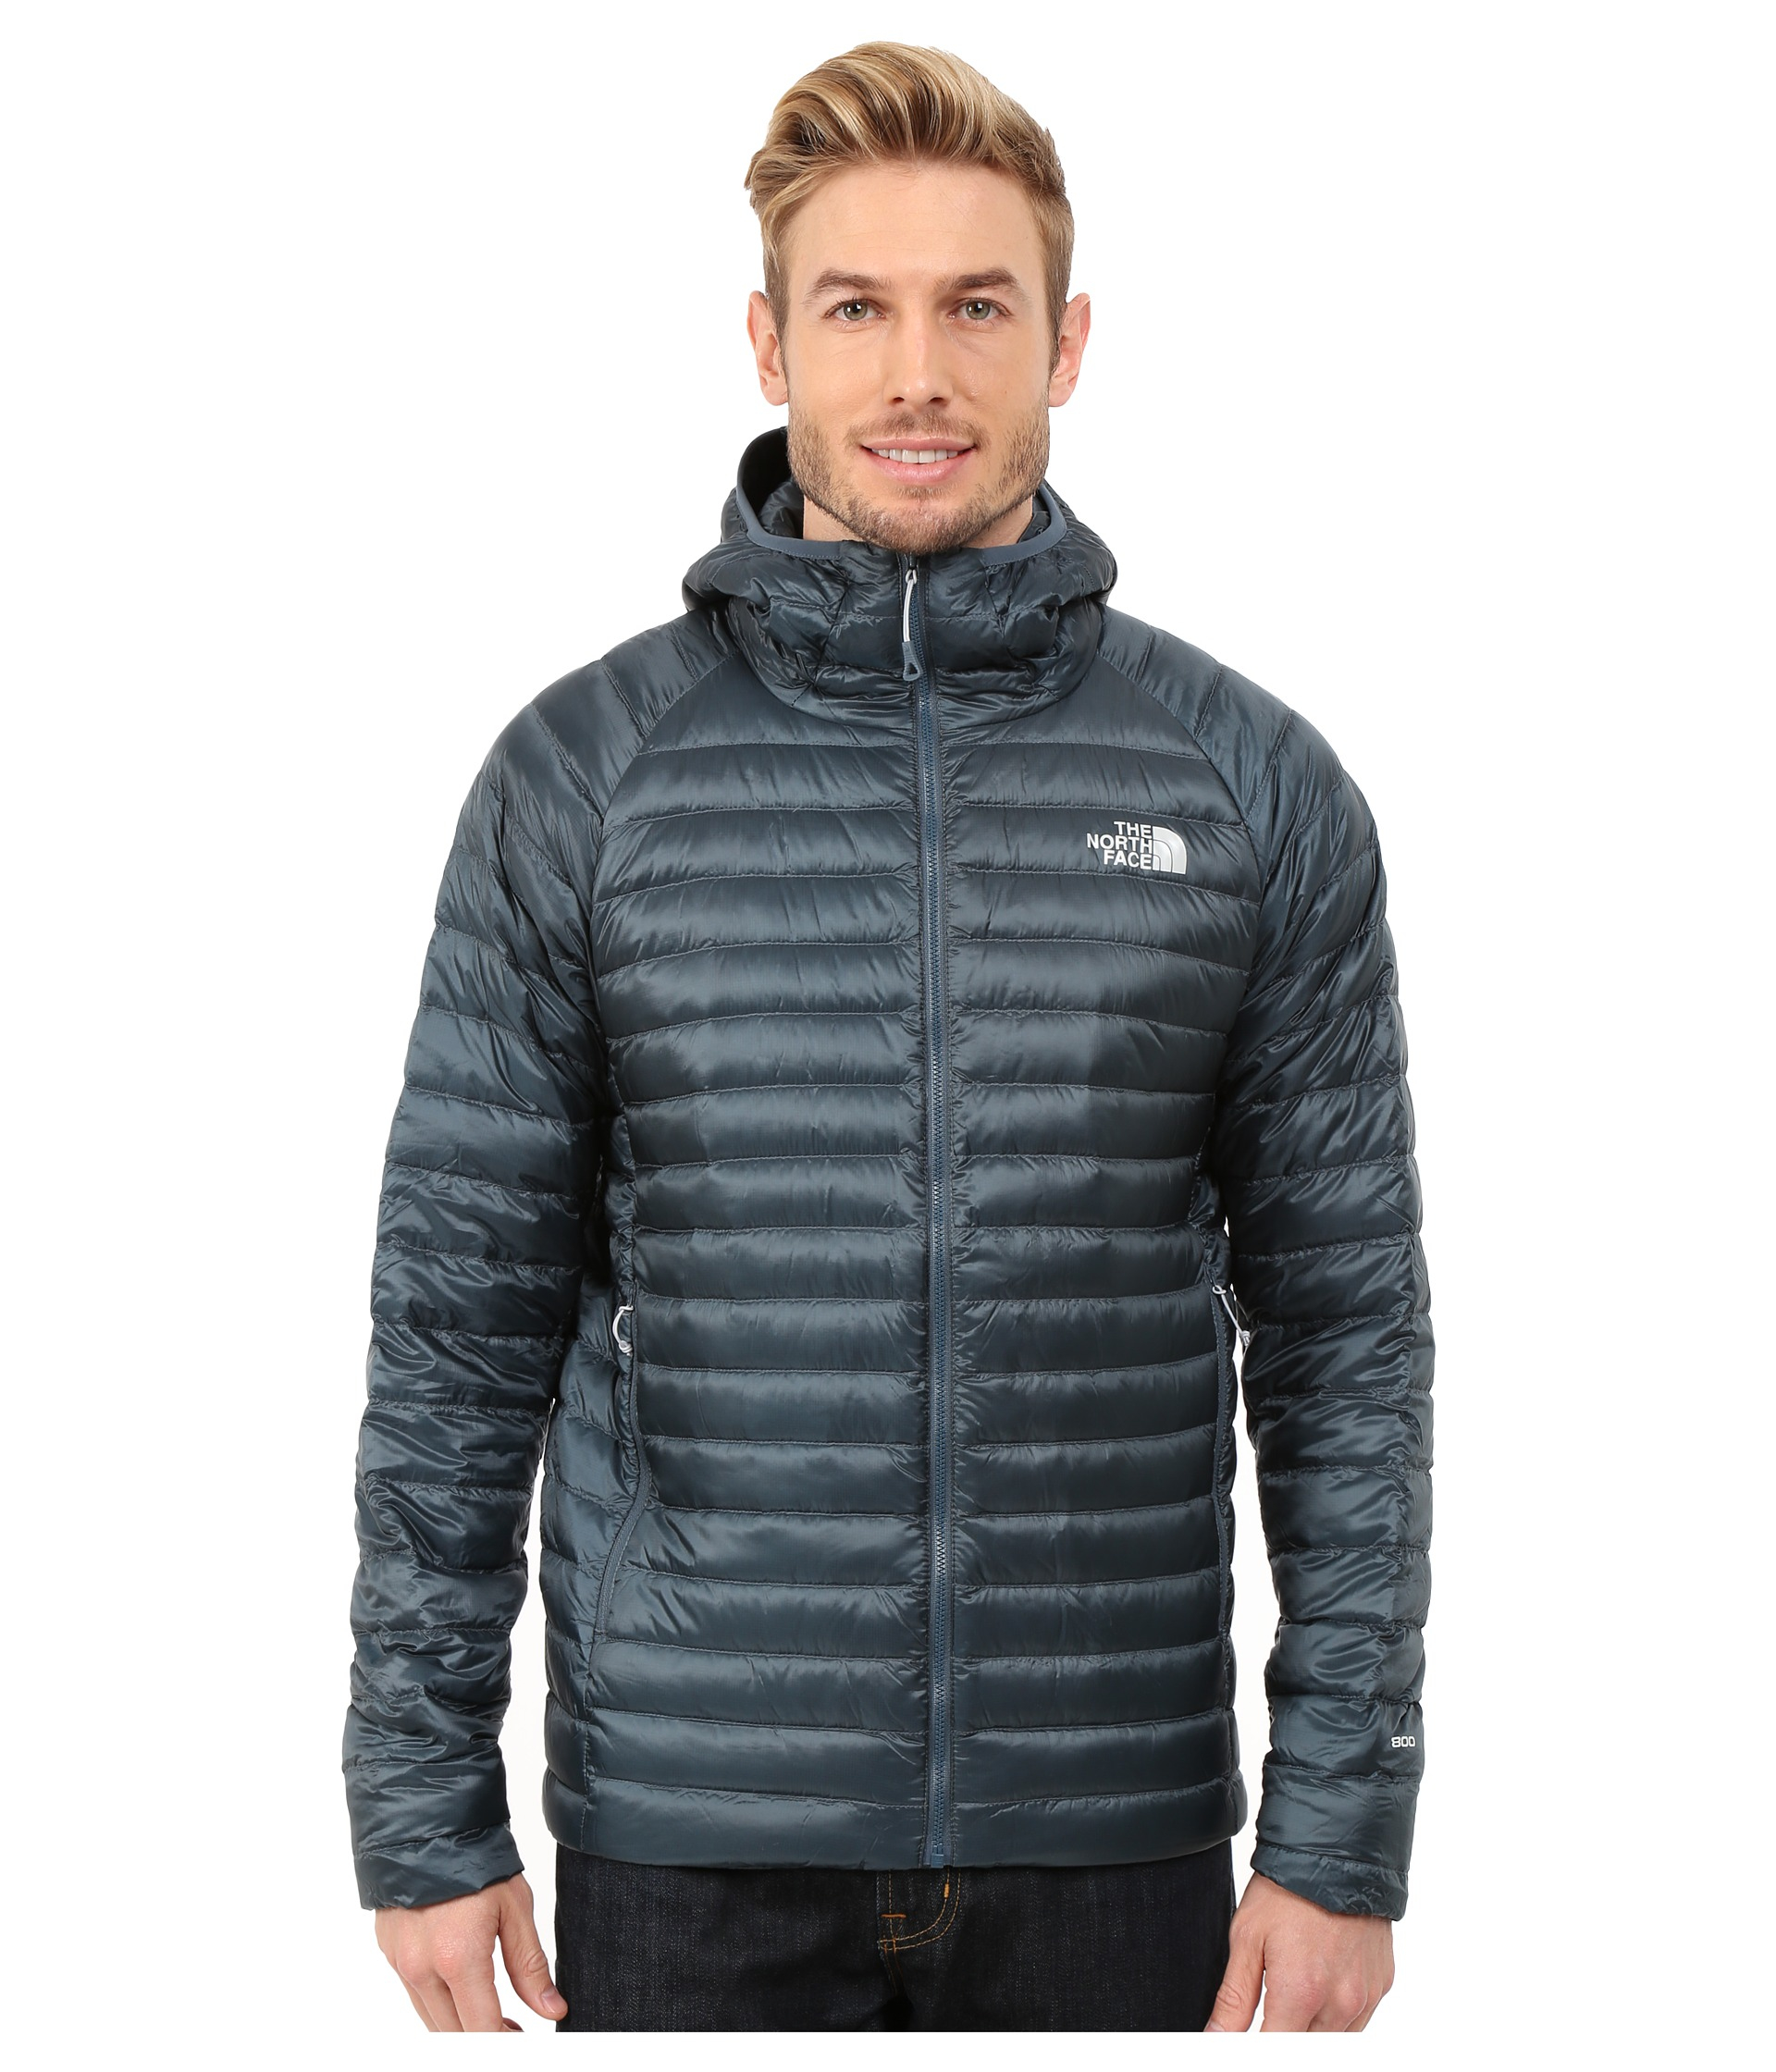 037d280872 ... order lyst the north face quince hooded jacket in blue for men 3bdf5  d6e49